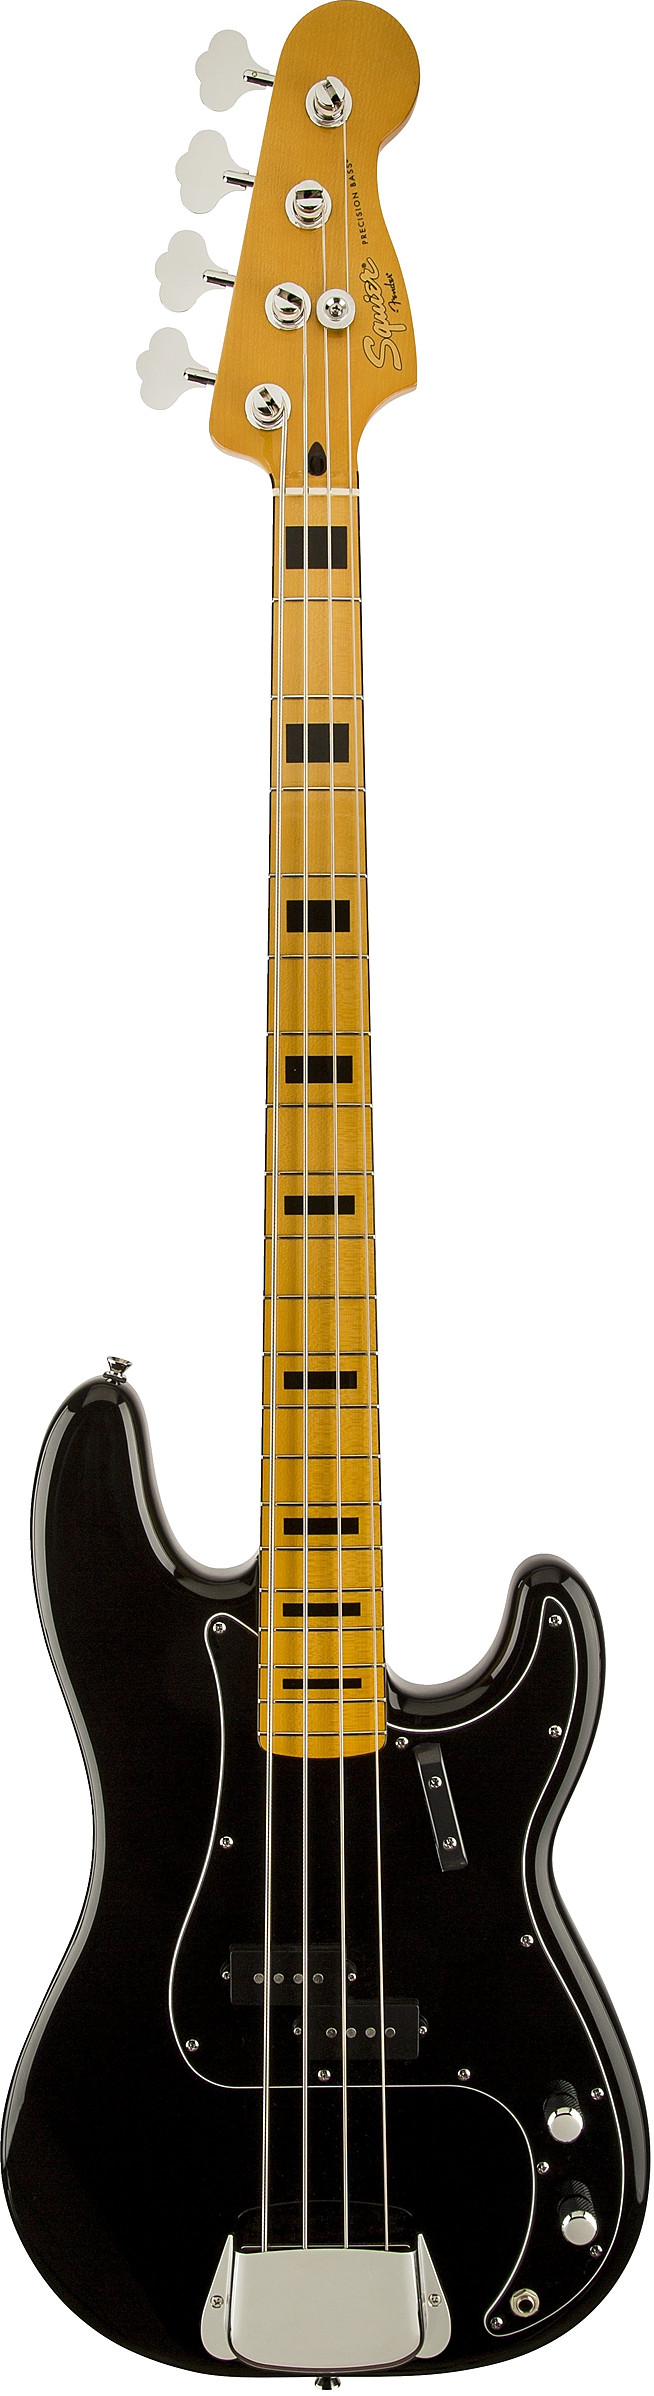 Classic Vibe Precision Bass `70s by Squier by Fender